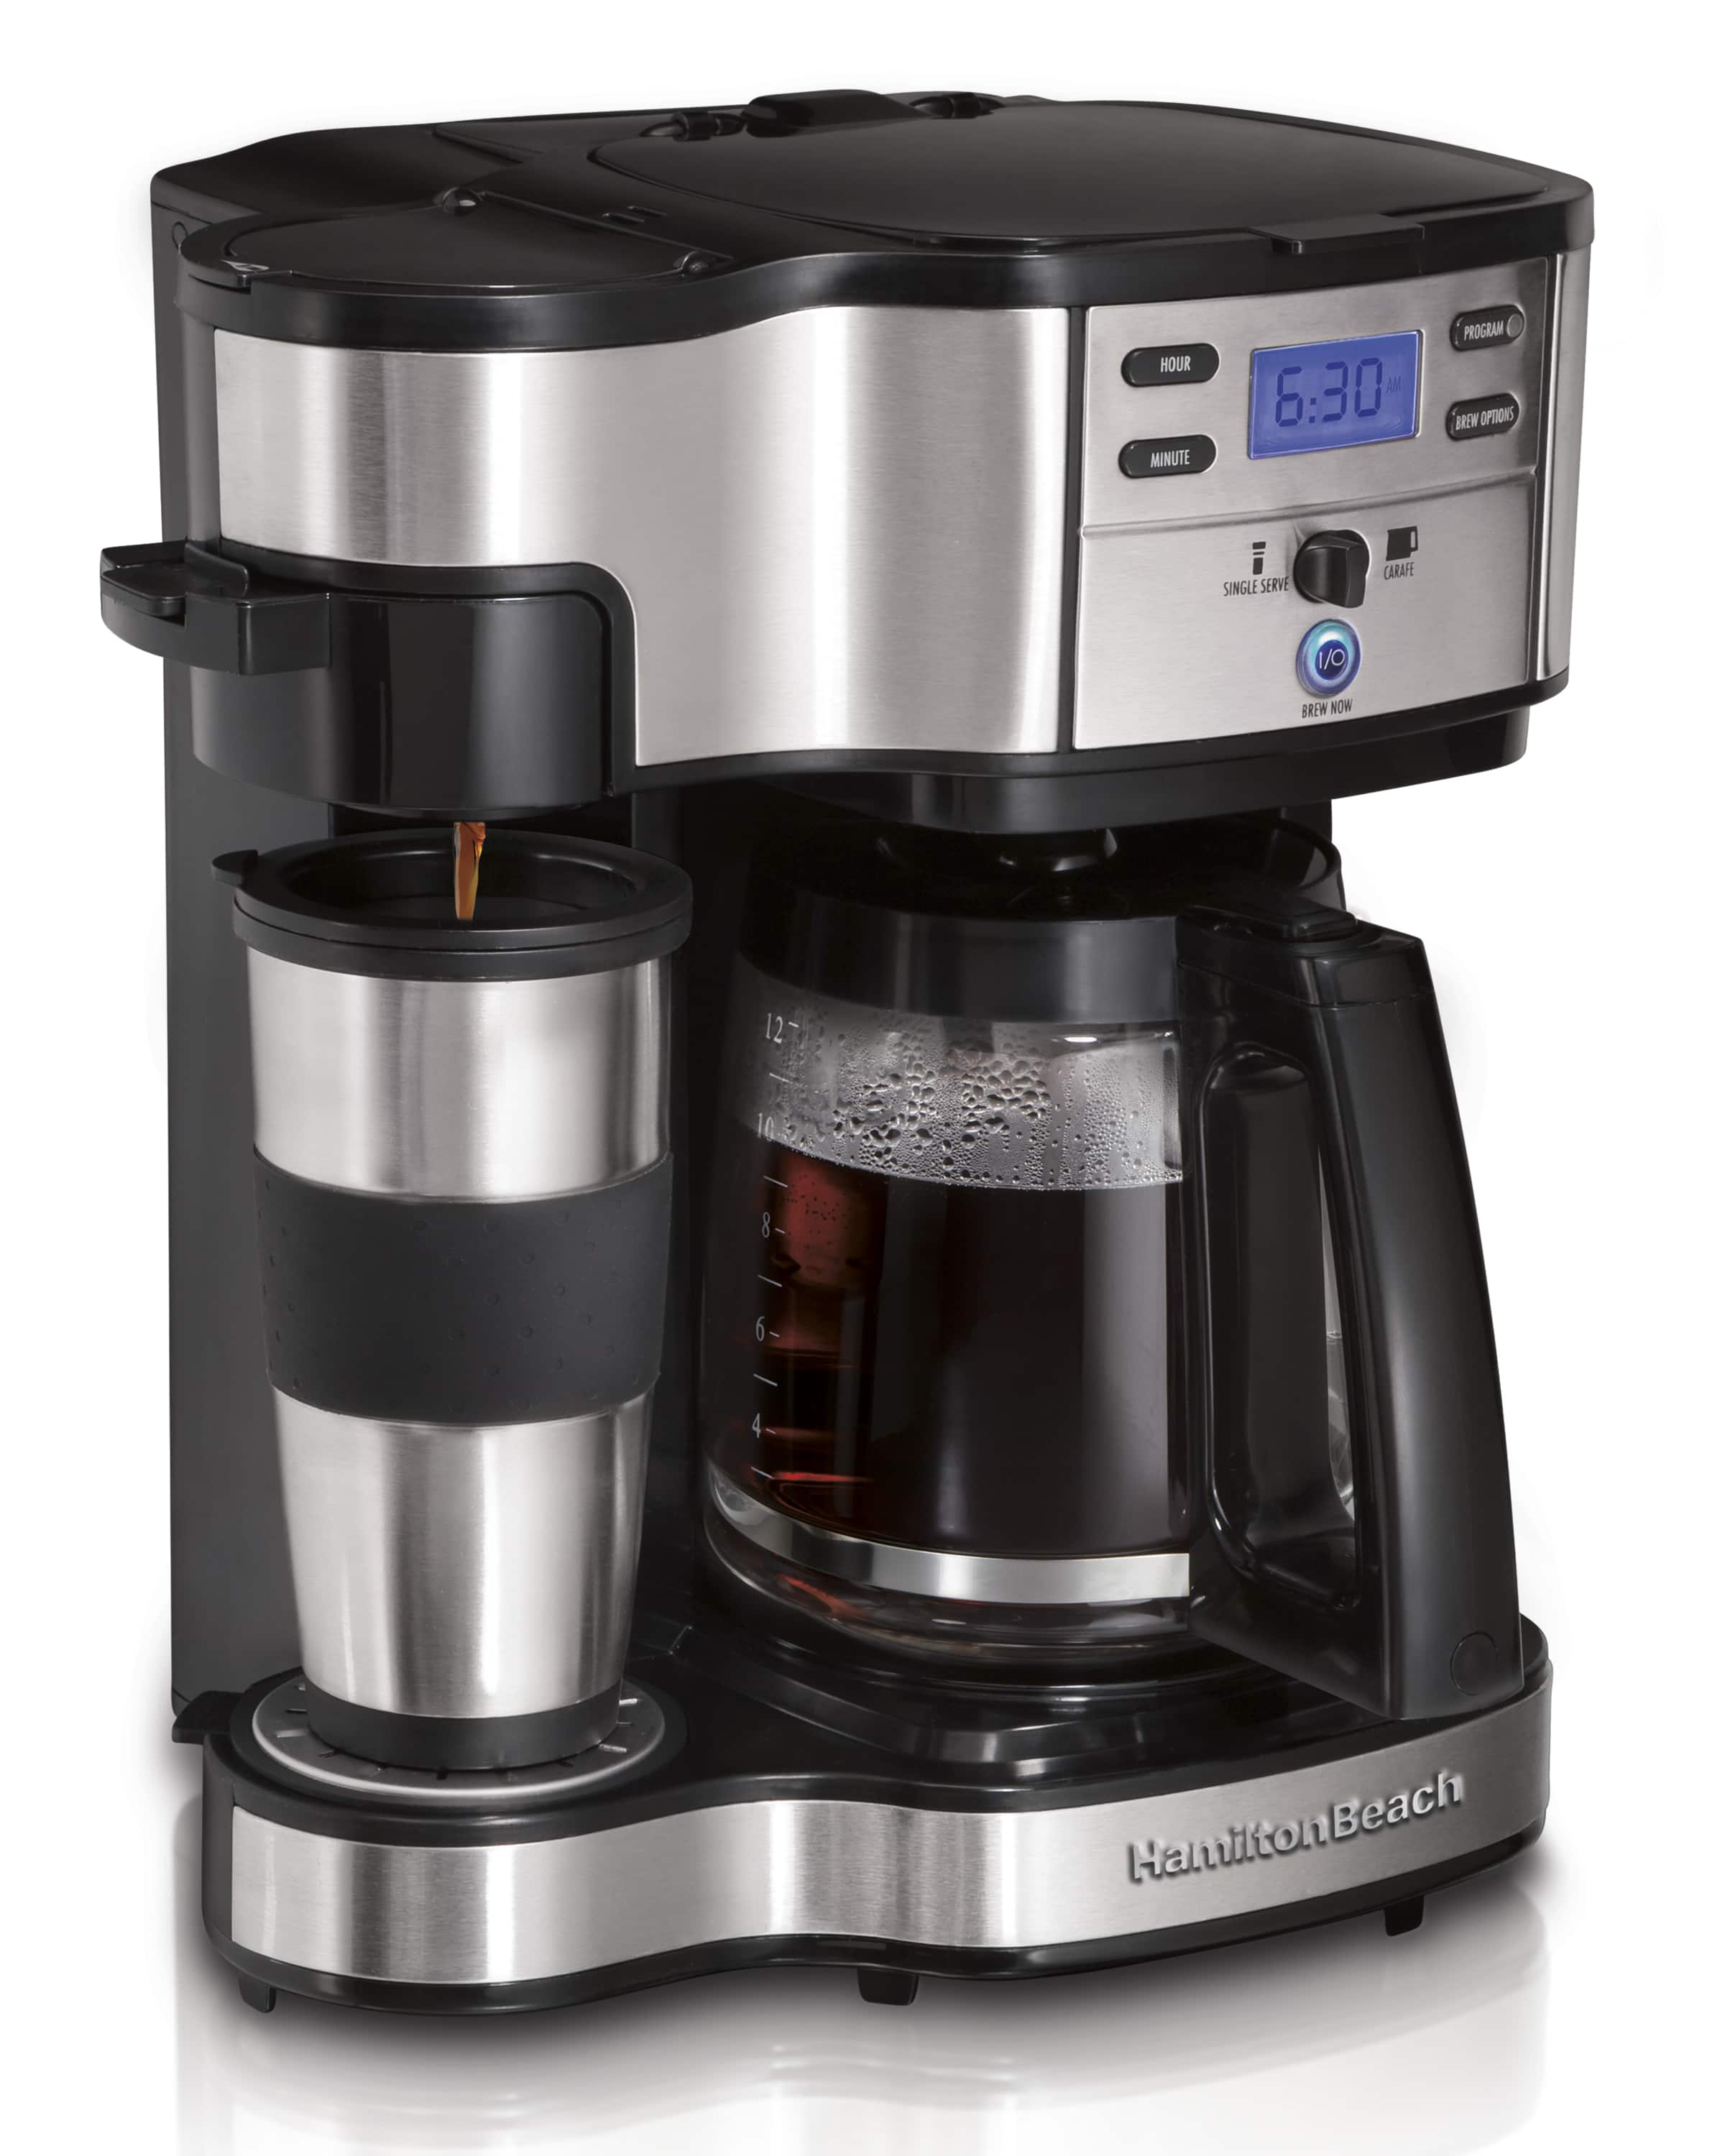 Hamilton Beach 2-Way Programmable Coffee Brewer w/ 12-Cup Carafe (Stainless Steel) $39 + Free S&H